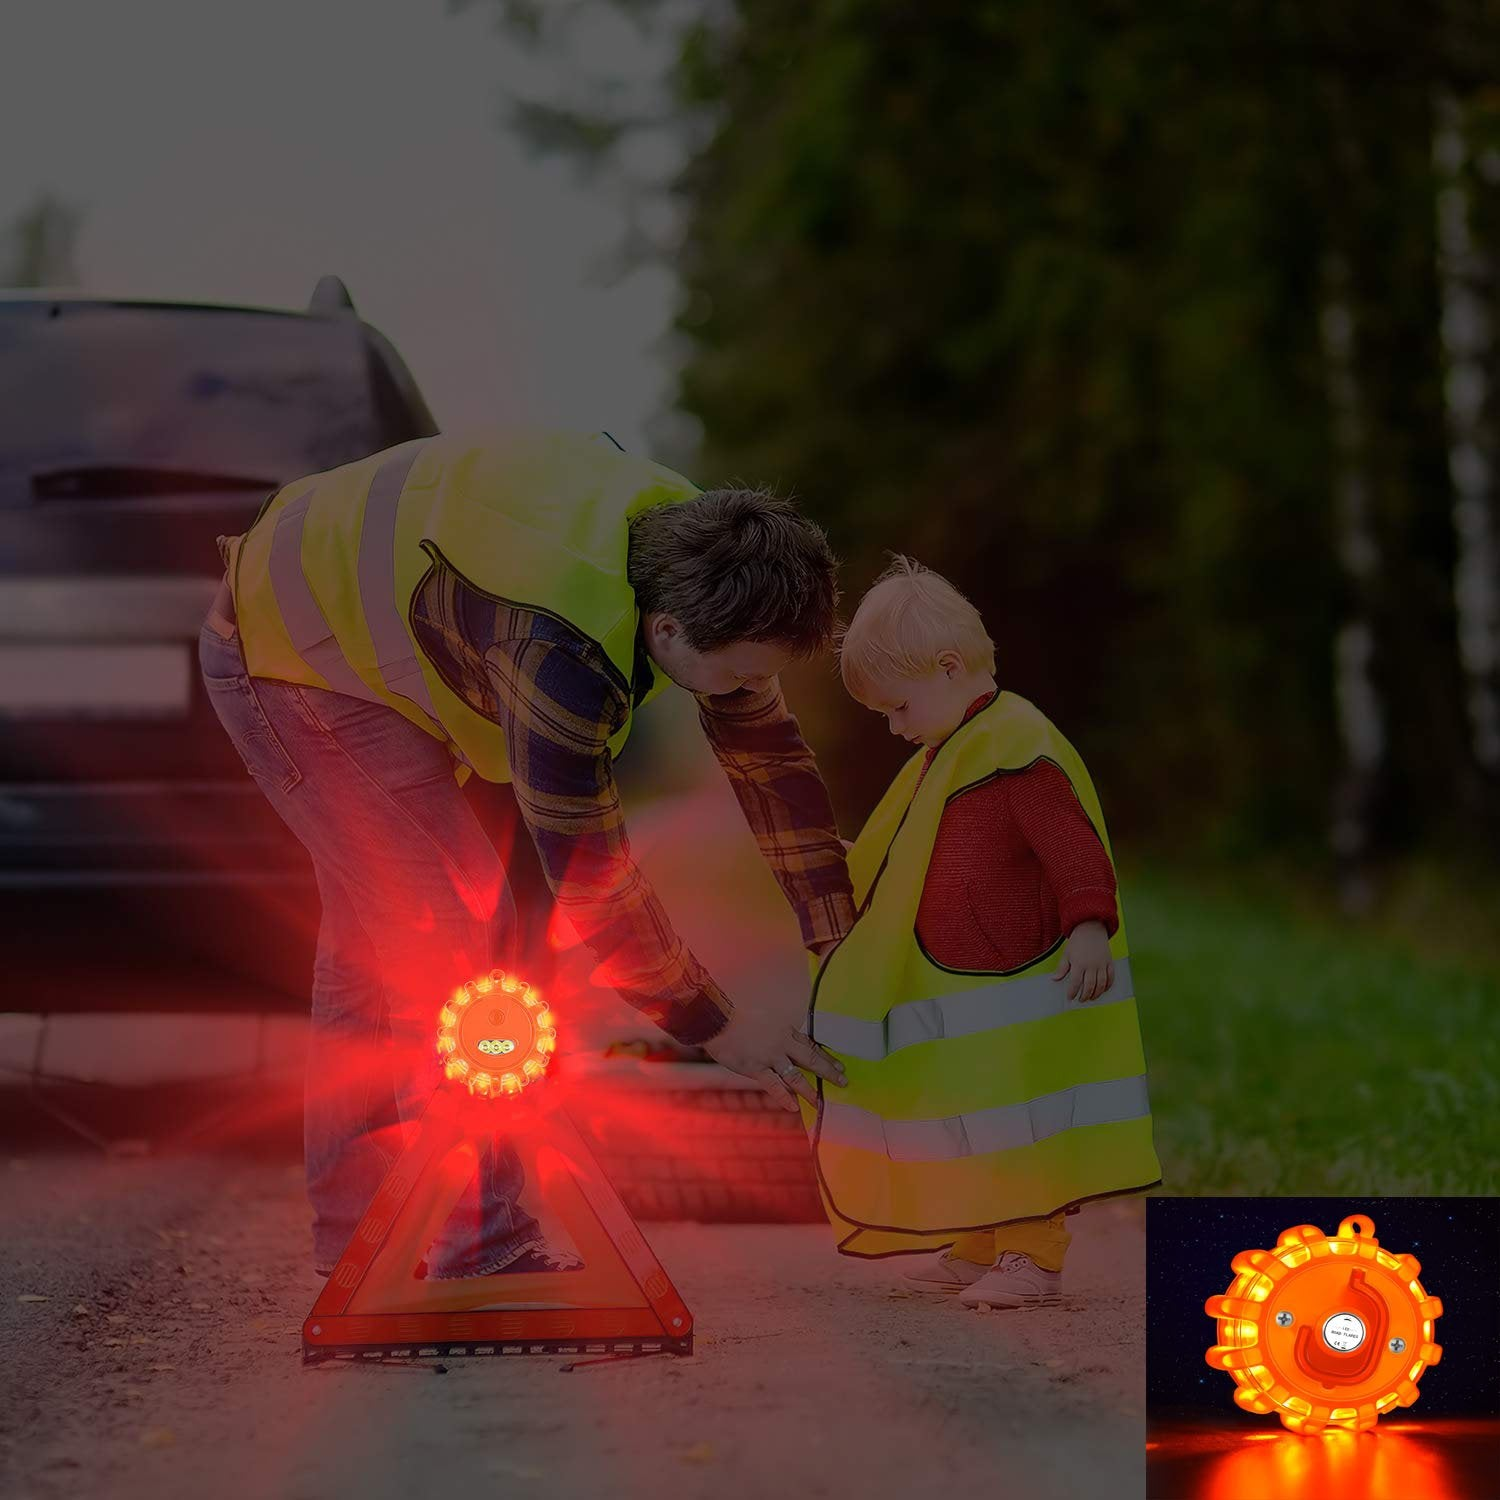 Pack of 3 LED Road Flares Magnetic Emergency Flashing Safety Warning Light Car Road Signal Lamp